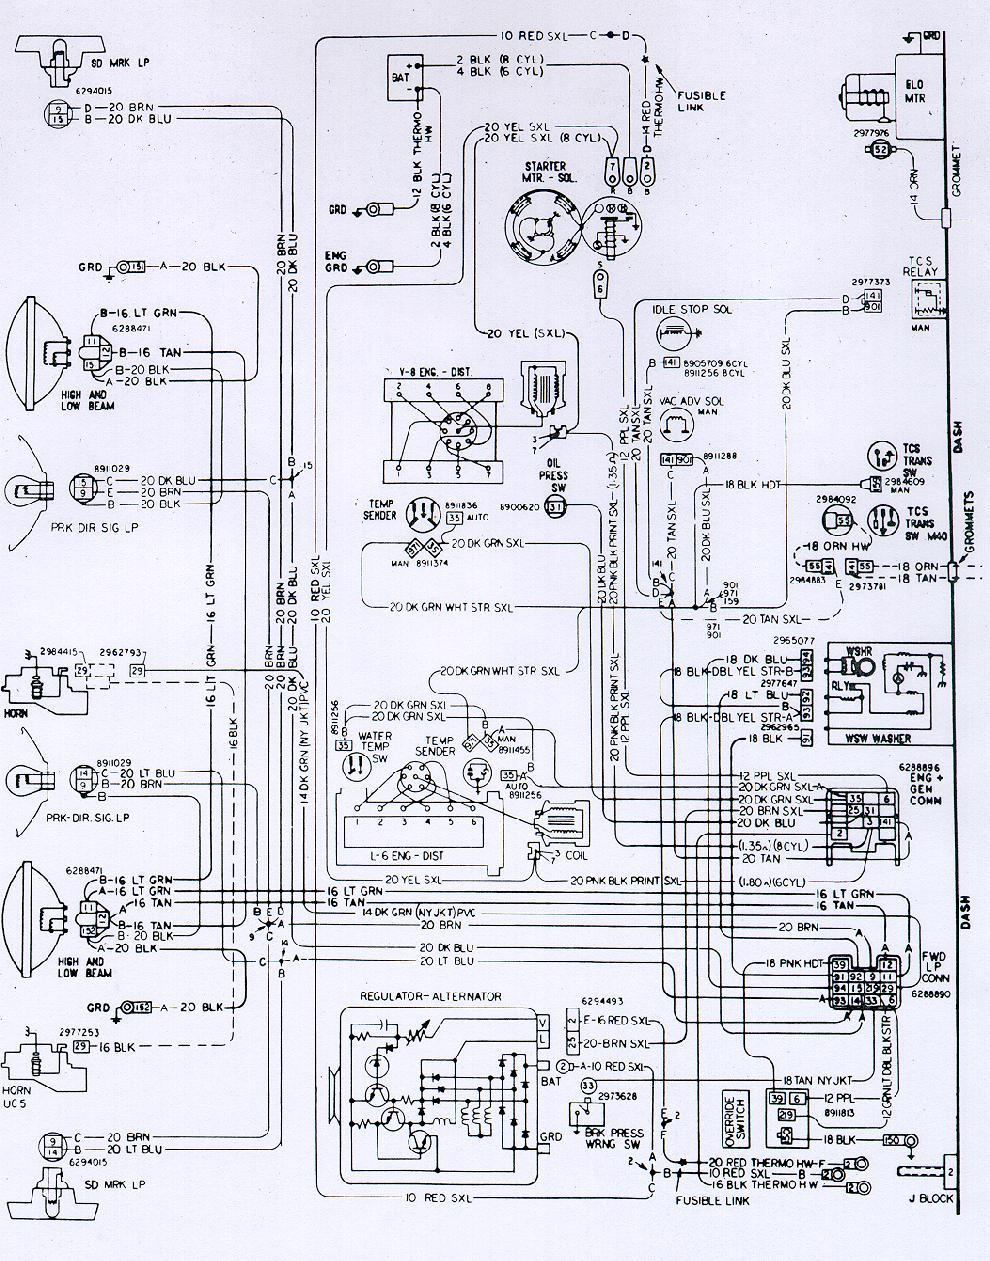 hight resolution of camaro wiring diagrams wiring diagram origin penncock 3800 engine wiring diagram camaro wiring electrical information